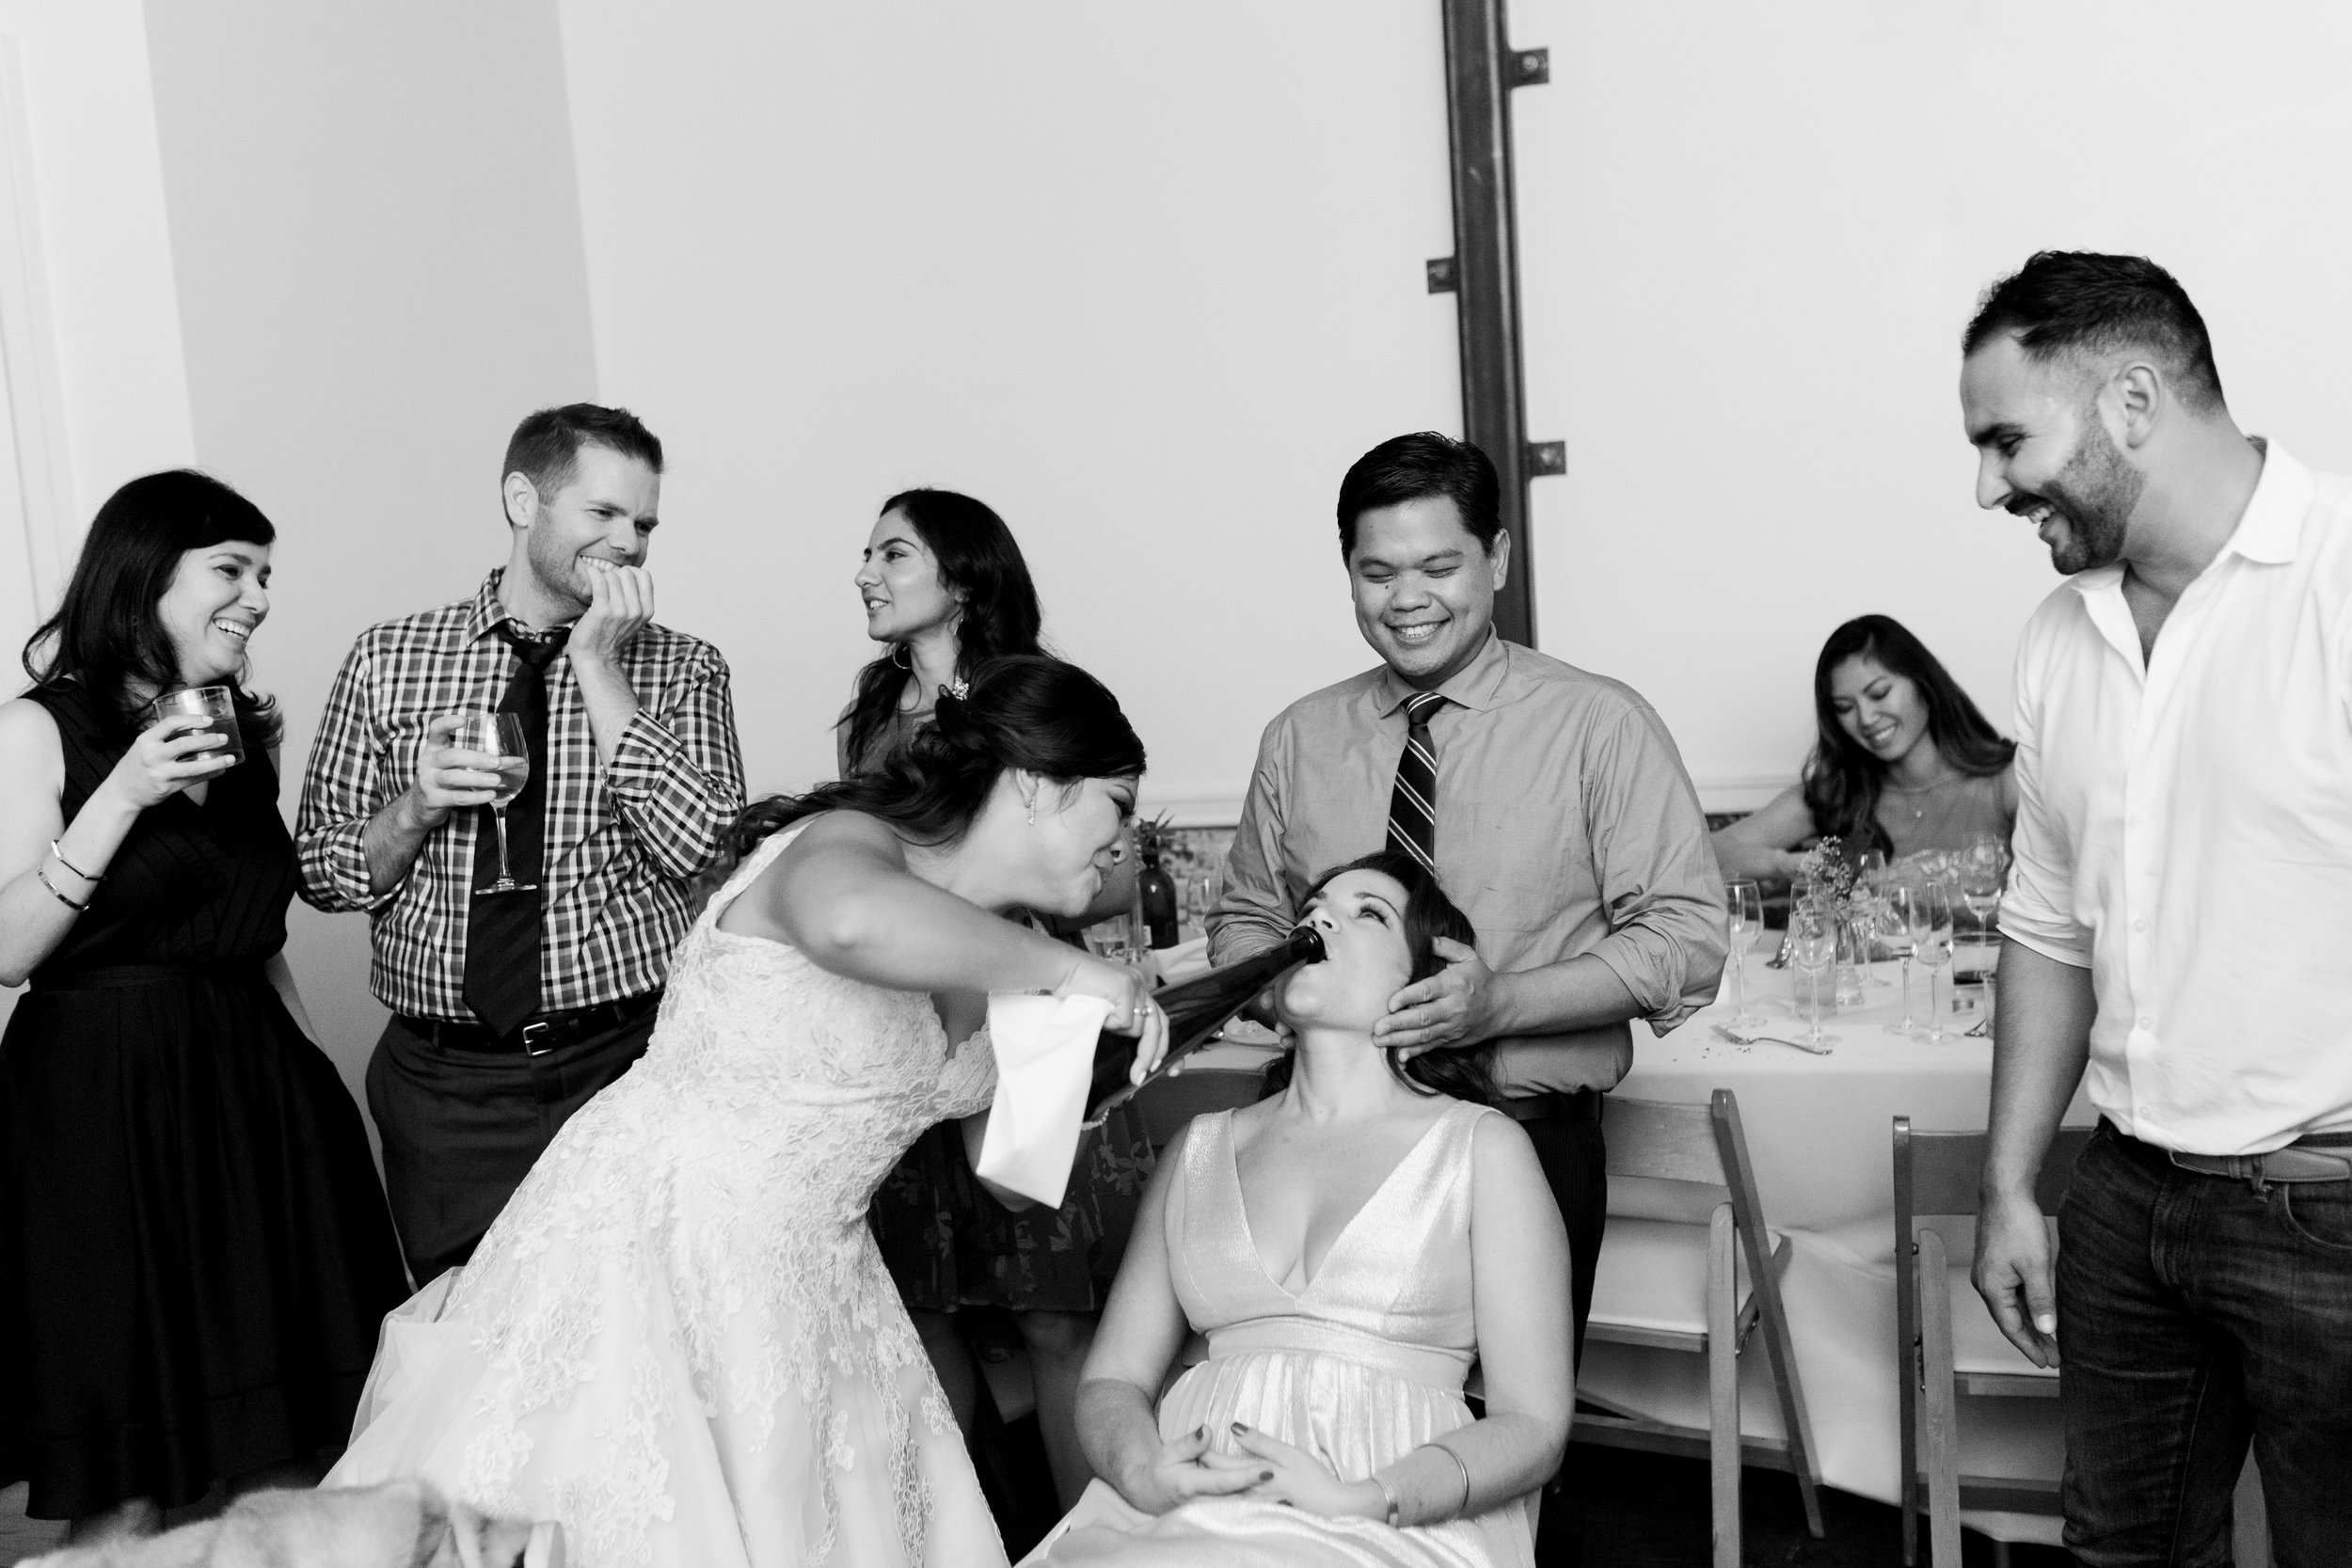 style-inspired-wedding-at-firehouse-8-in-san-francisco-99.jpg